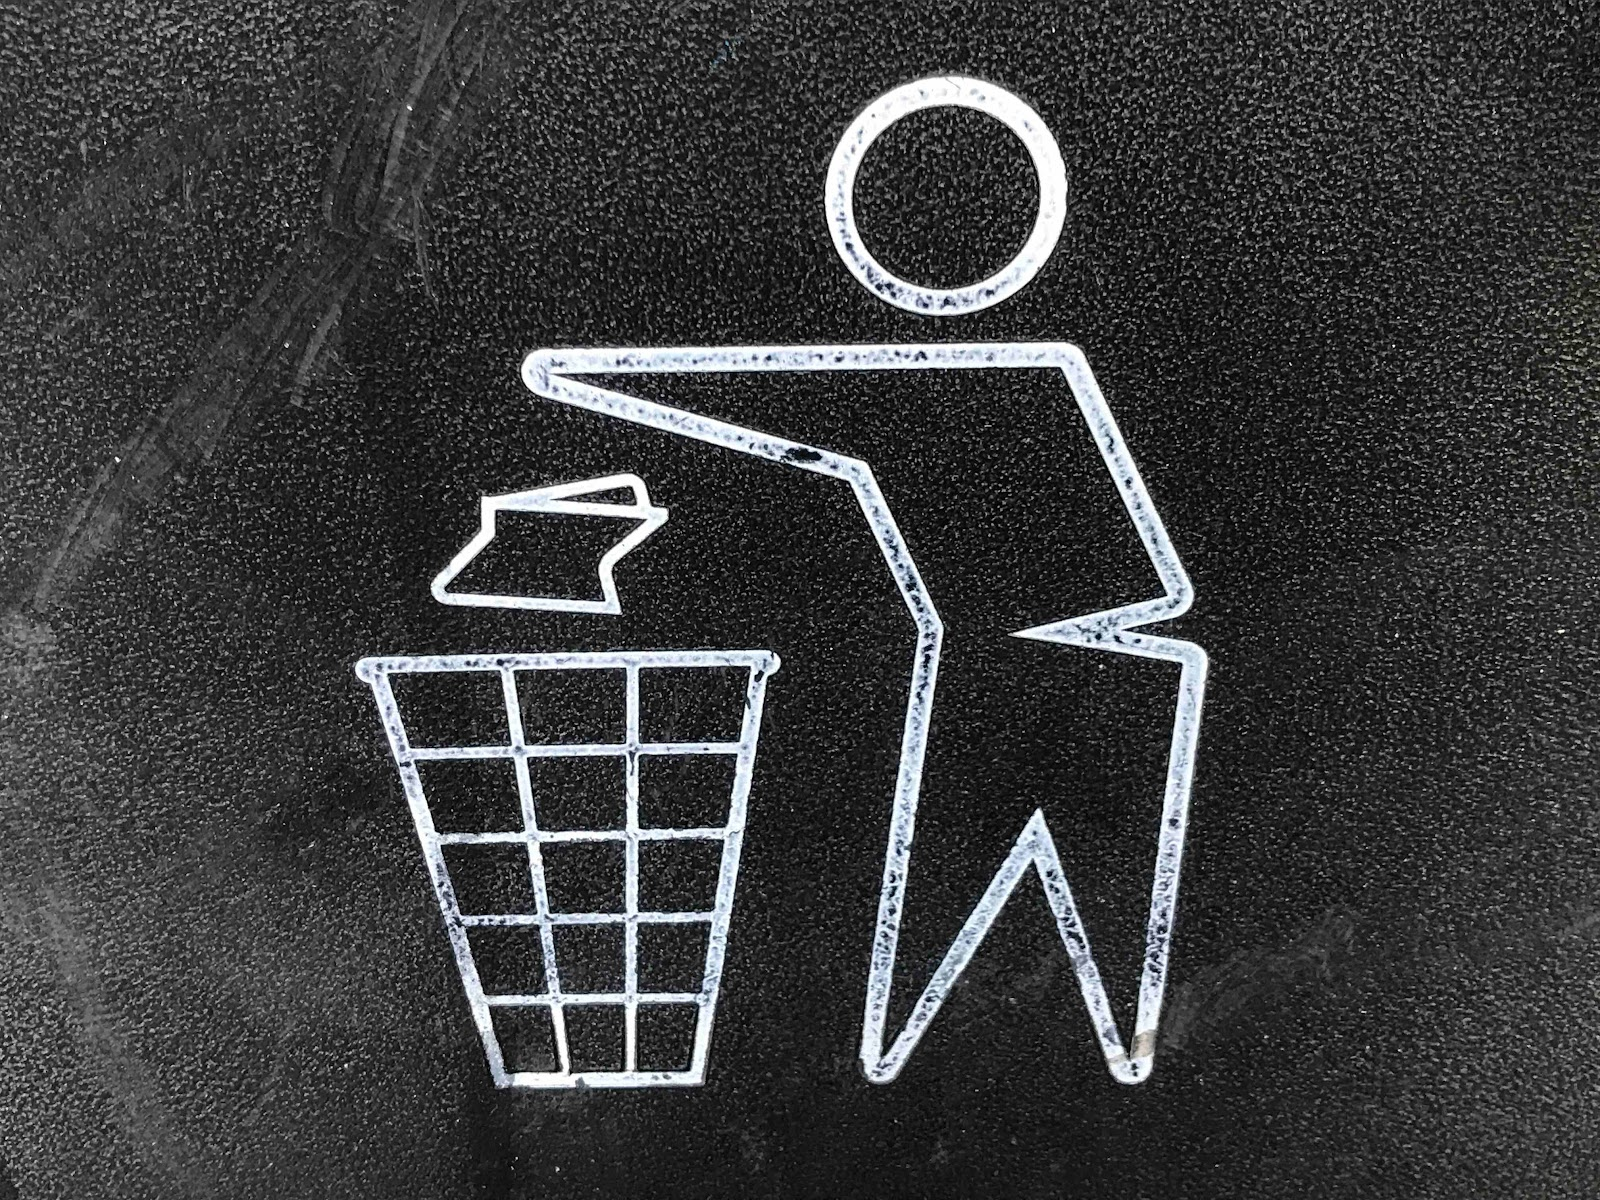 black and white image of a person throwing away a paper into the trash bin